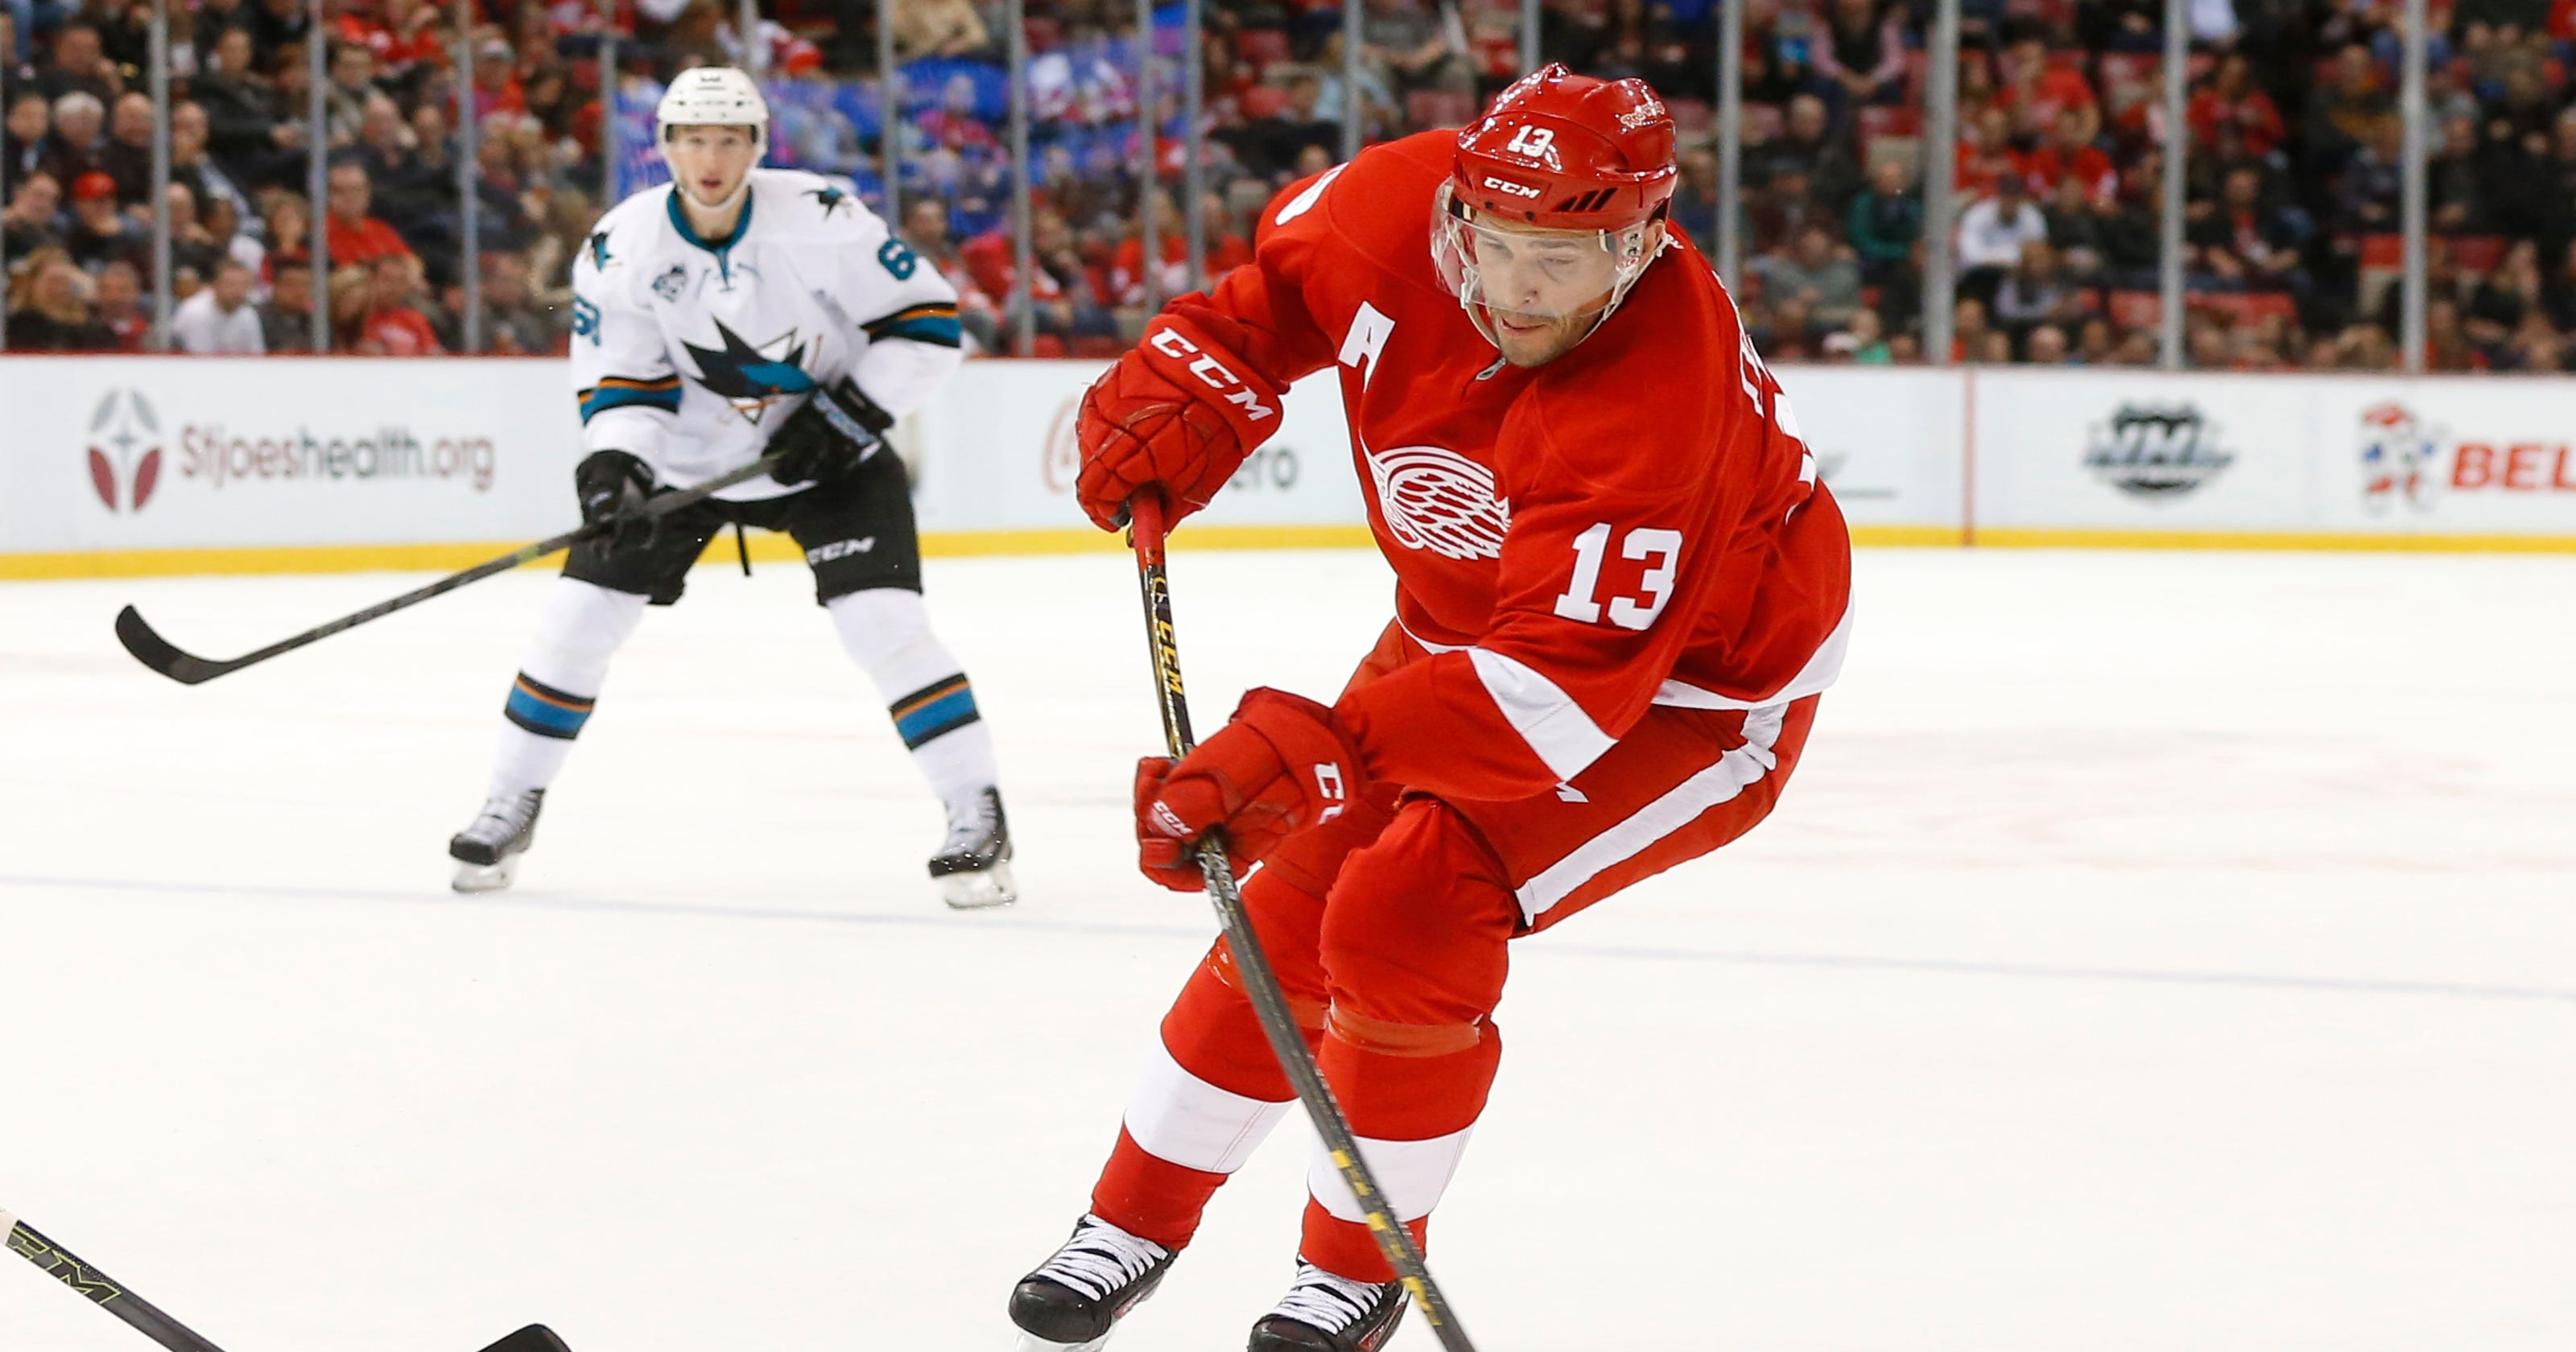 de3bcb86371 Breaking down Pavel Datsyuk's contract with Detroit Red Wings